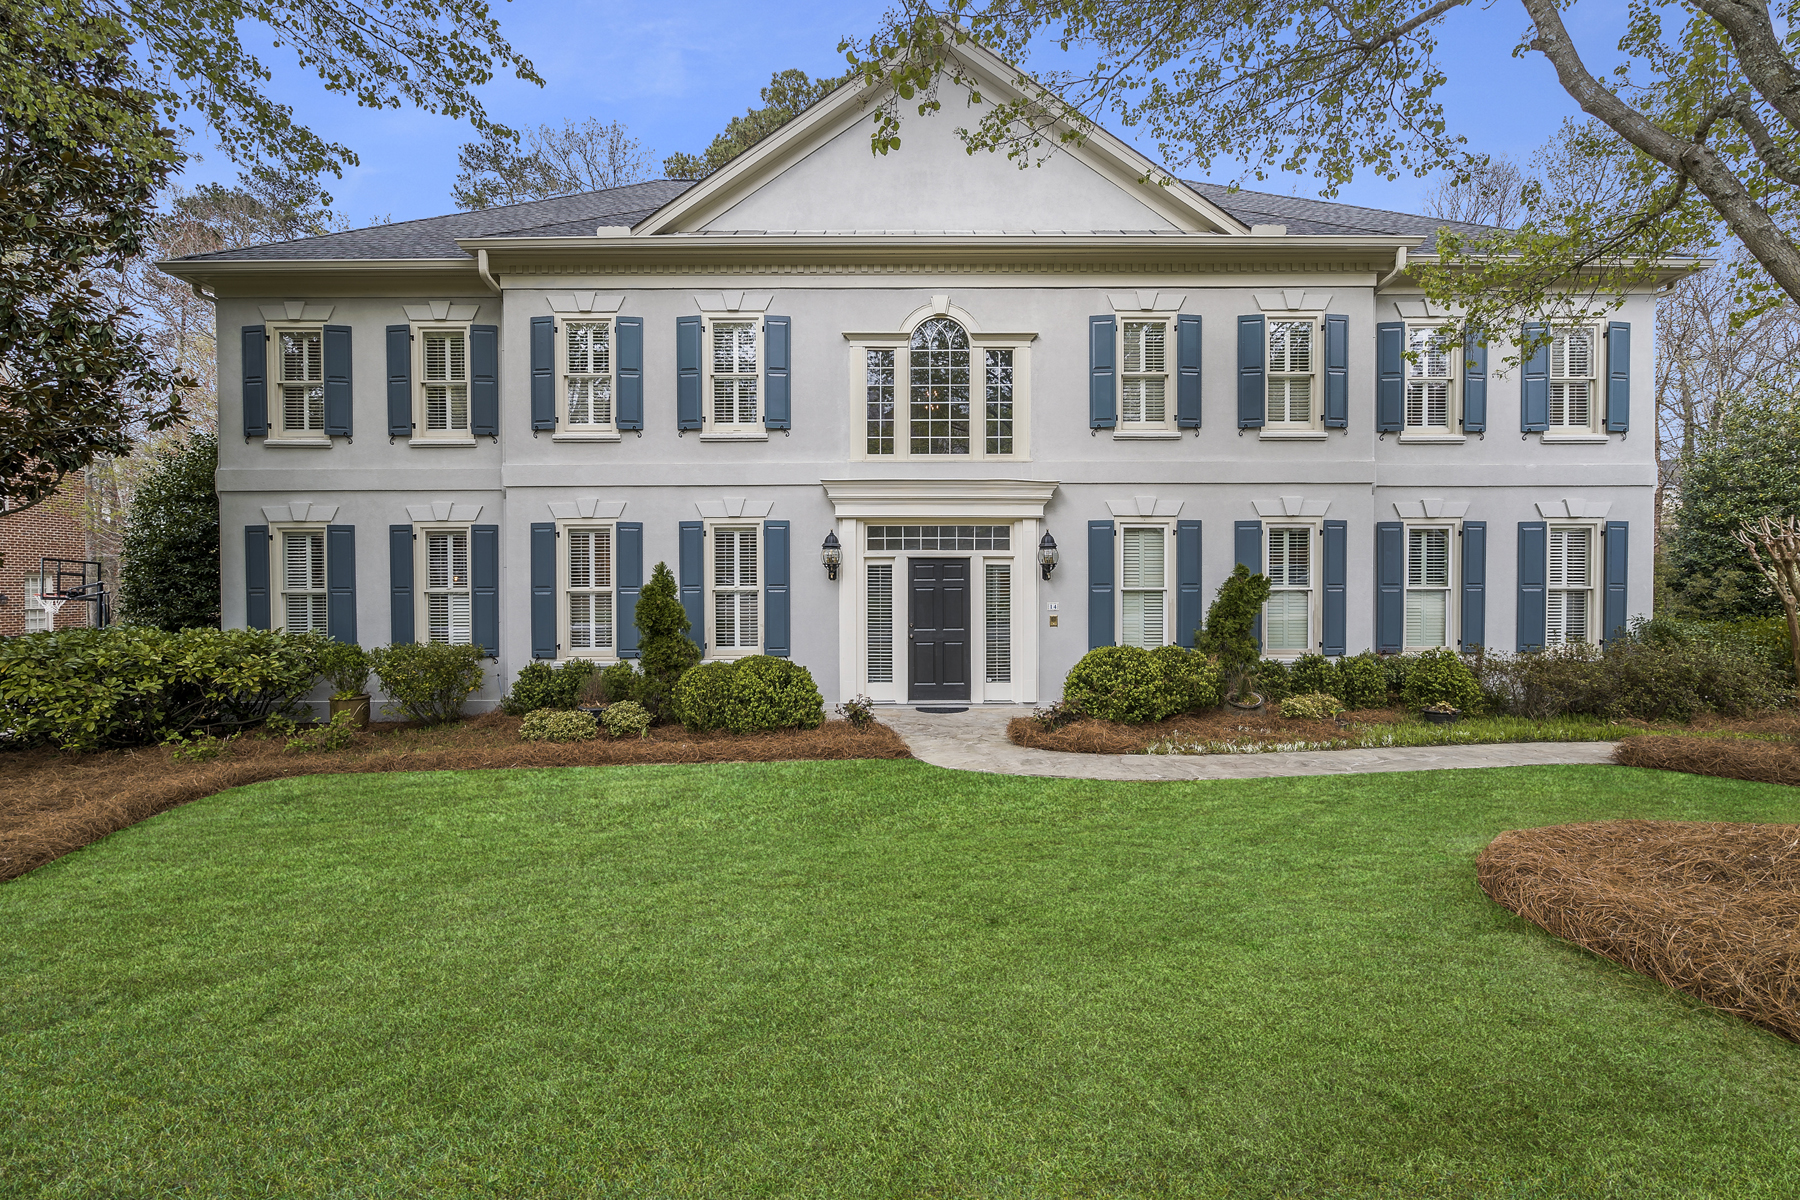 Single Family Home for Sale at Quiet Cul-de-sac Lot Located Across From Chastain Park 14 Rose Gate Drive NE, Atlanta, Georgia, 30342 United States